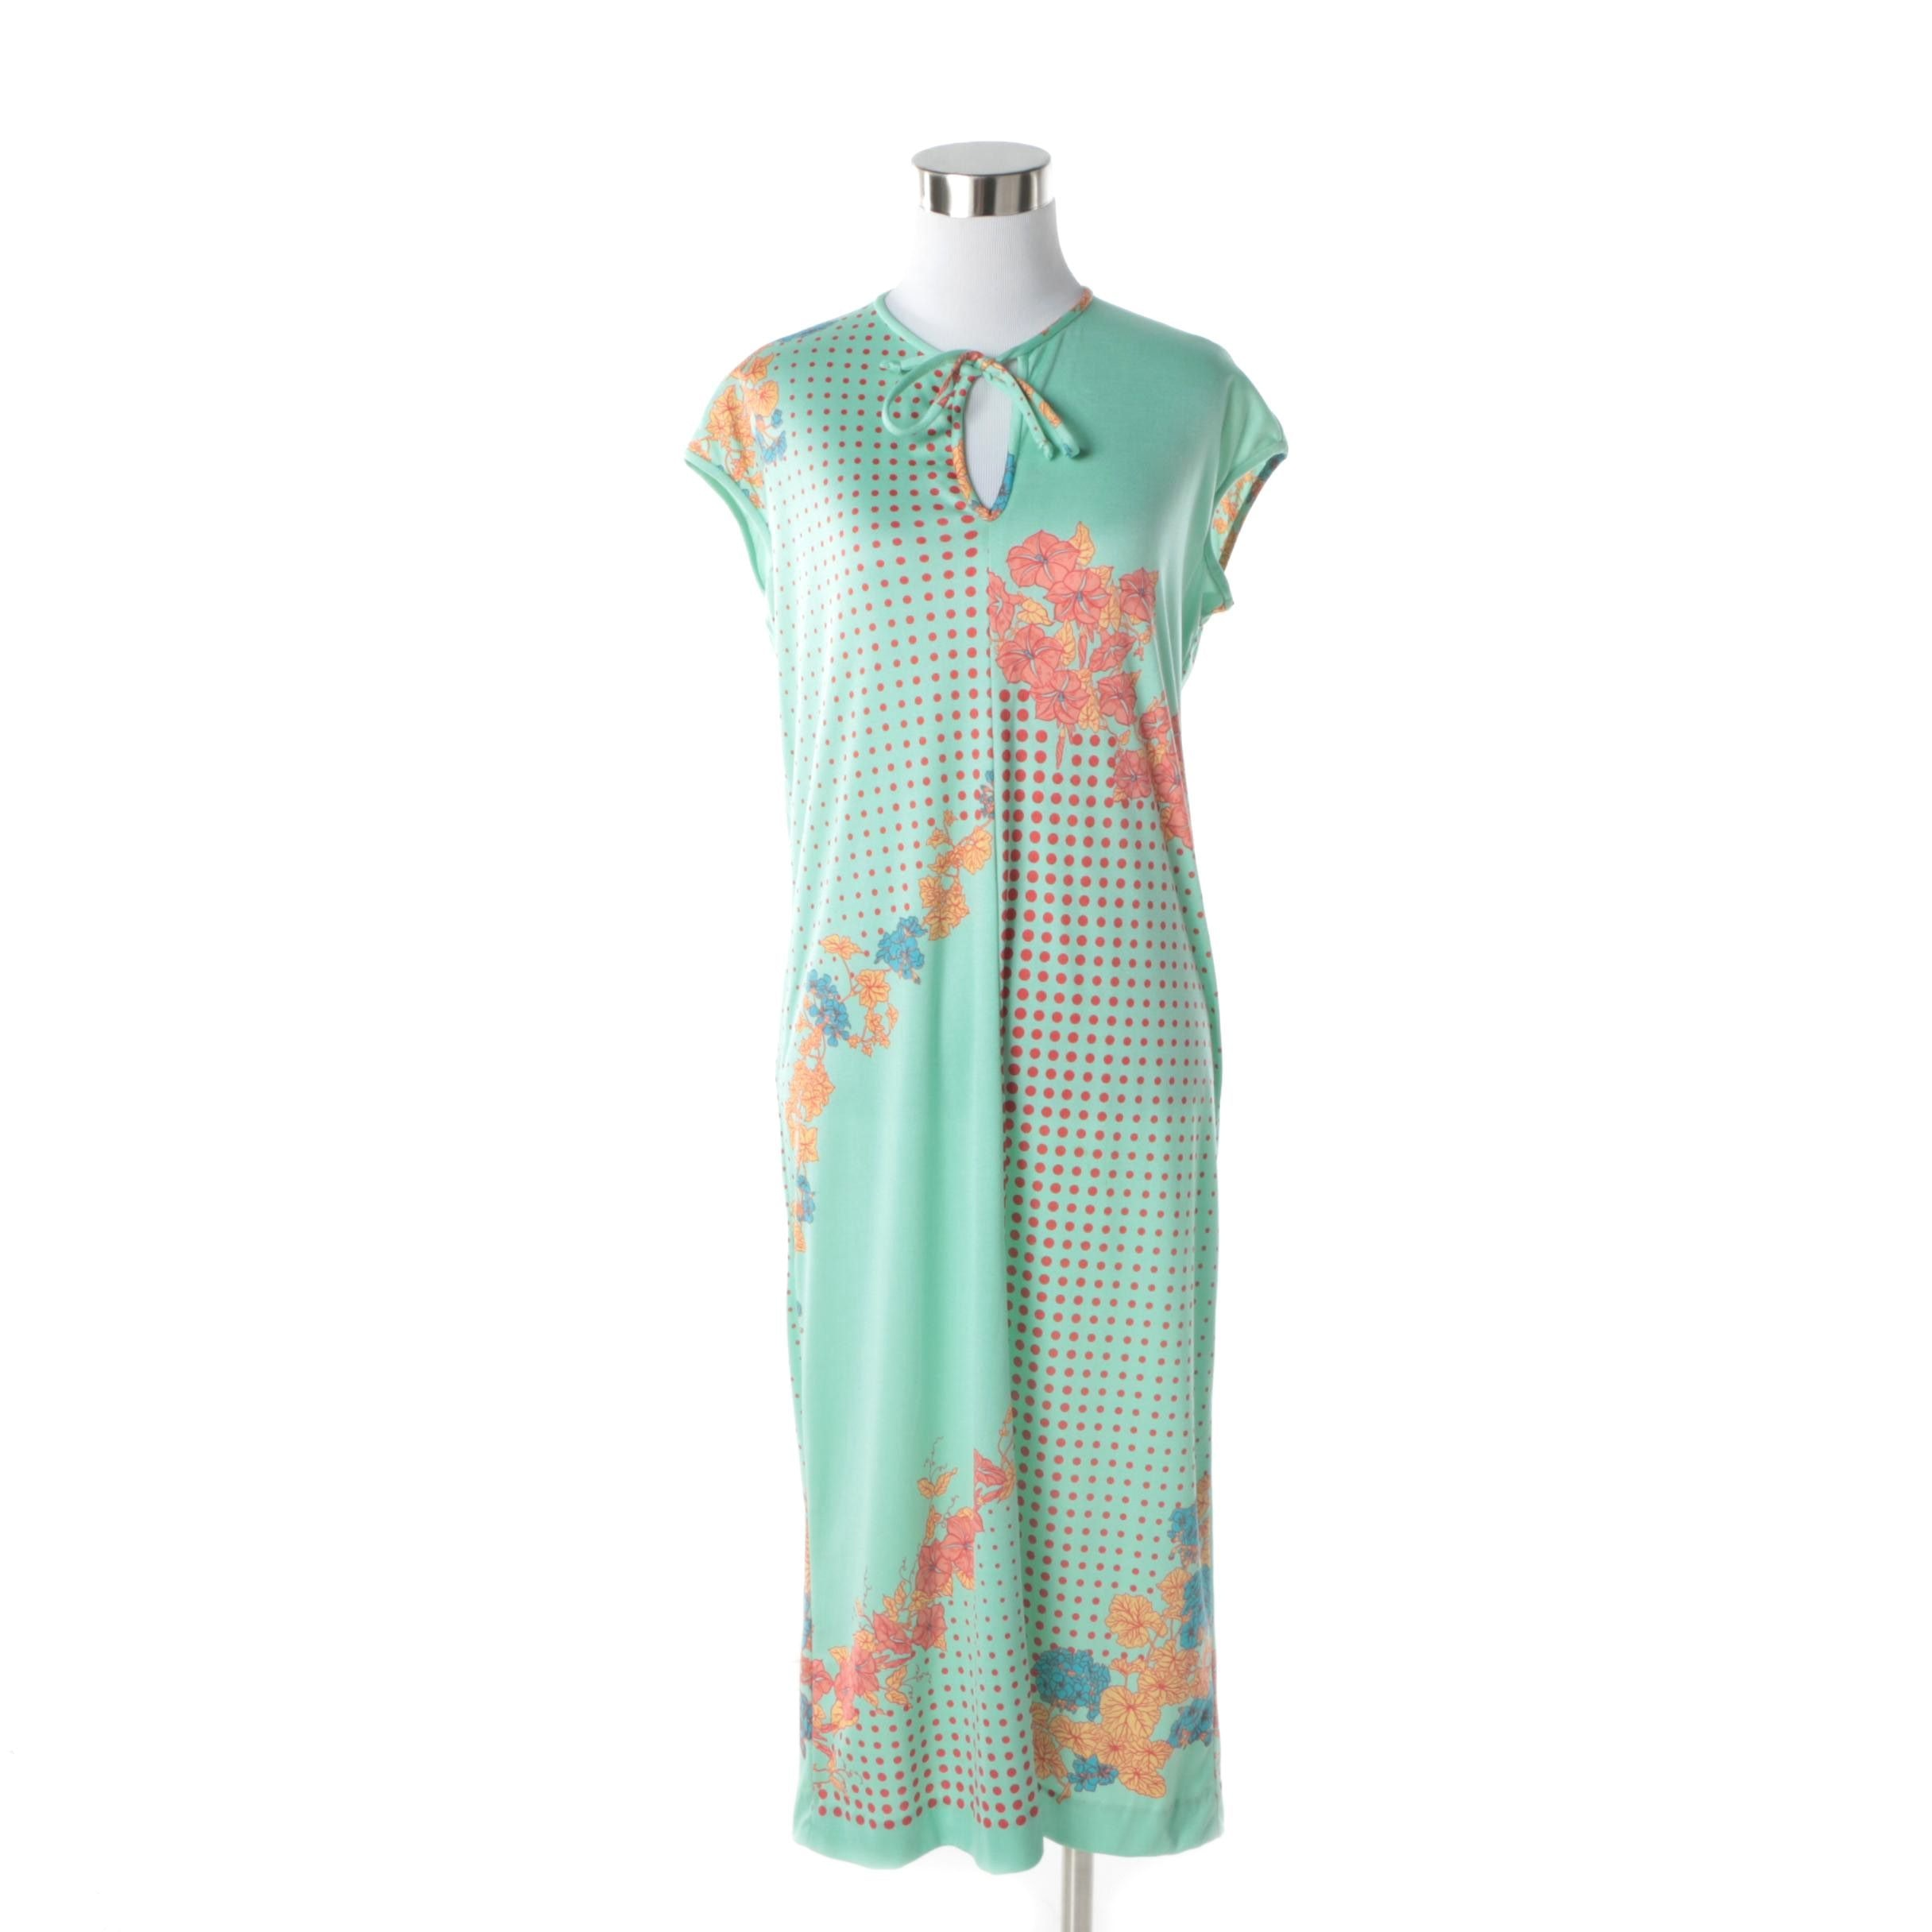 1970s Vintage Paganne Mint Graphic Floral Midi Dress